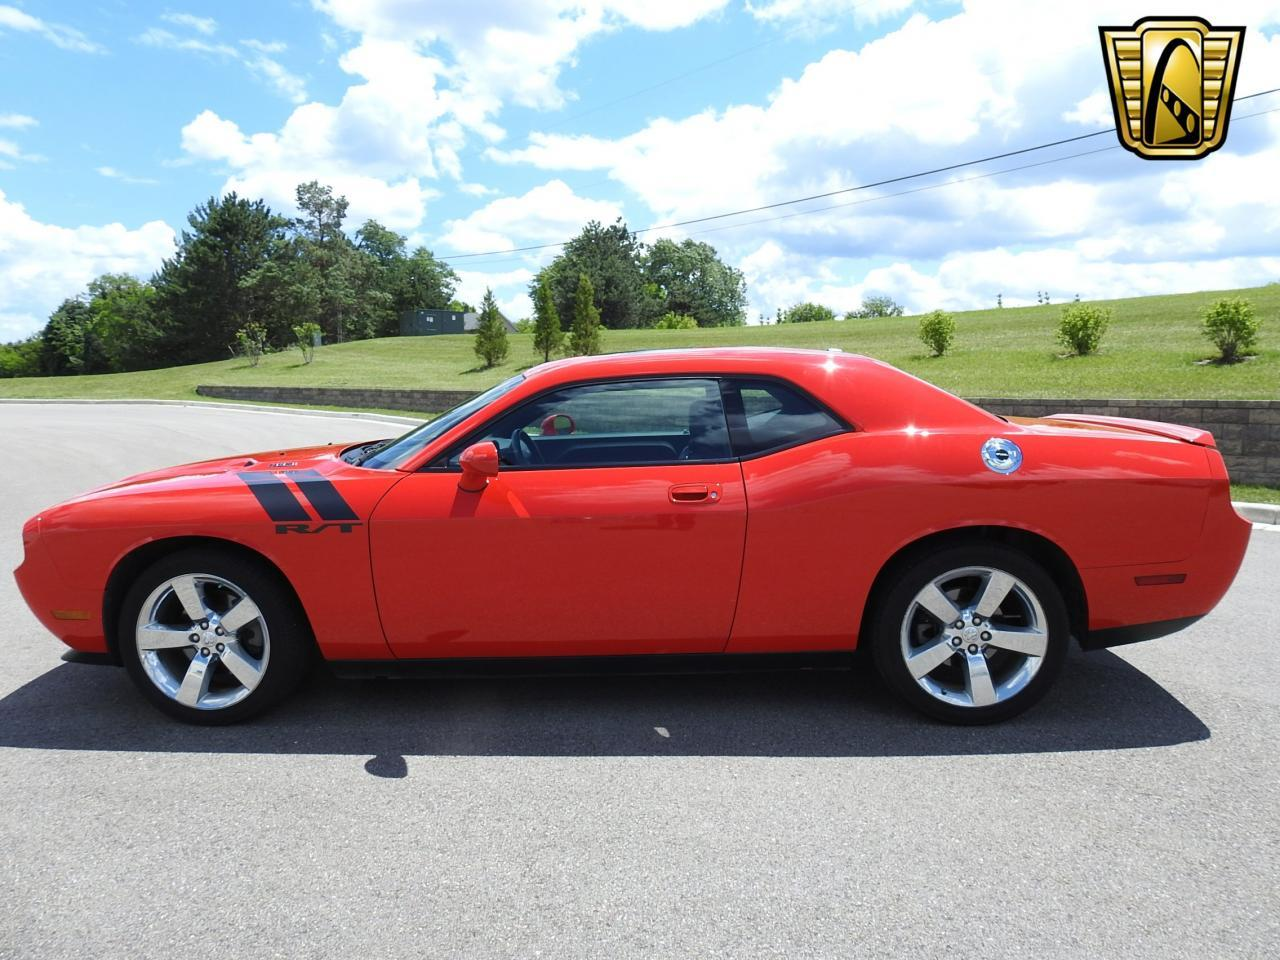 Large Picture of 2009 Dodge Challenger located in Wisconsin - $19,995.00 - LCTZ